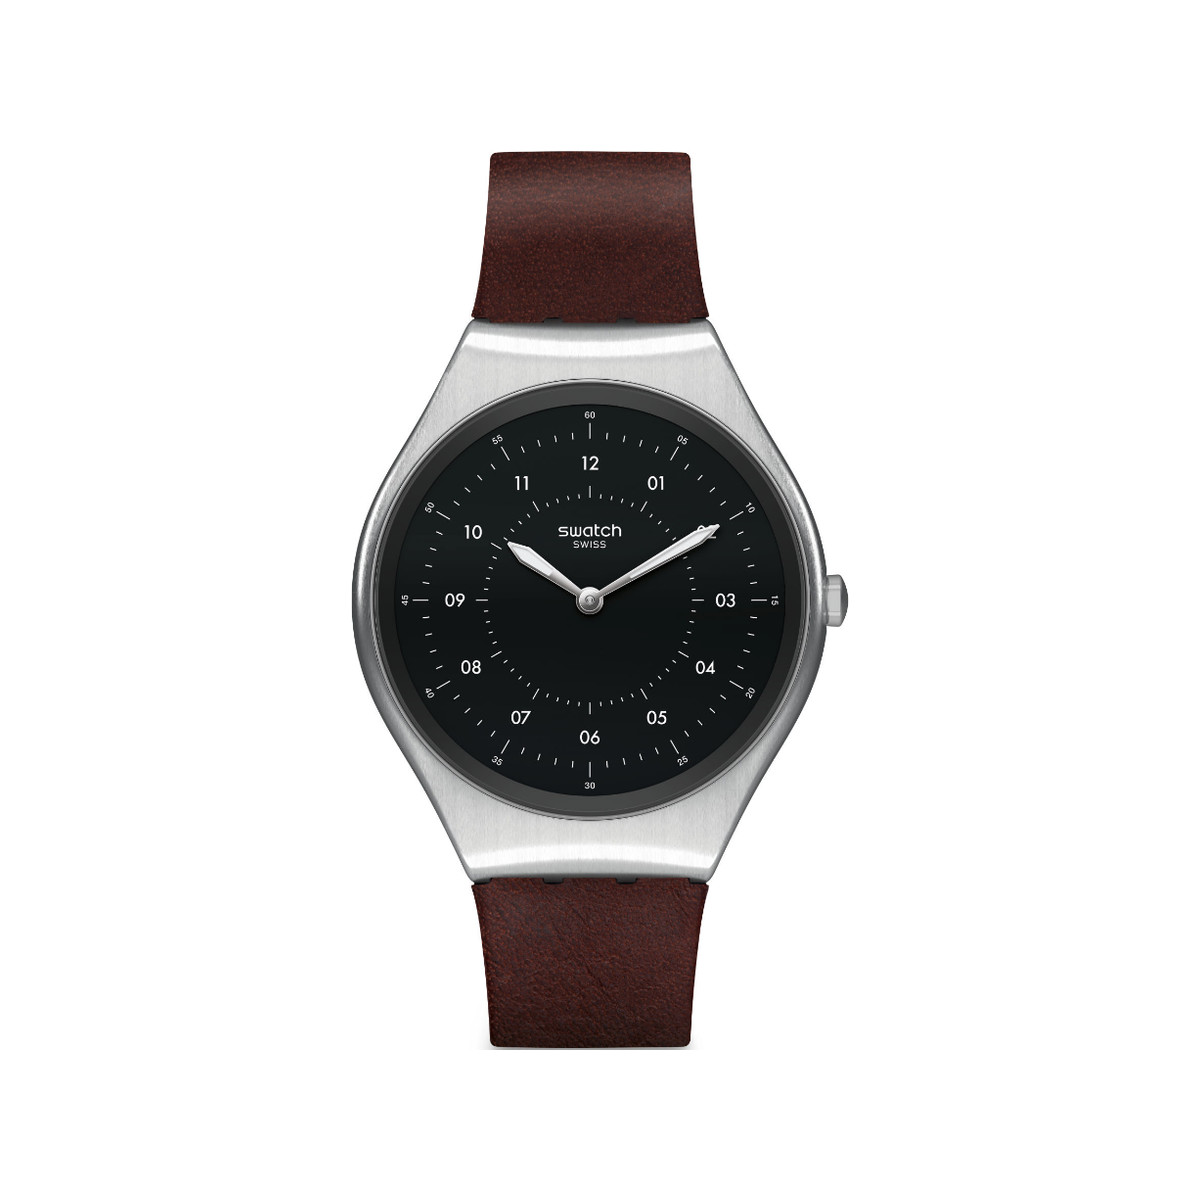 Montre Swatch mixte Skinbrushed acier cuir marron